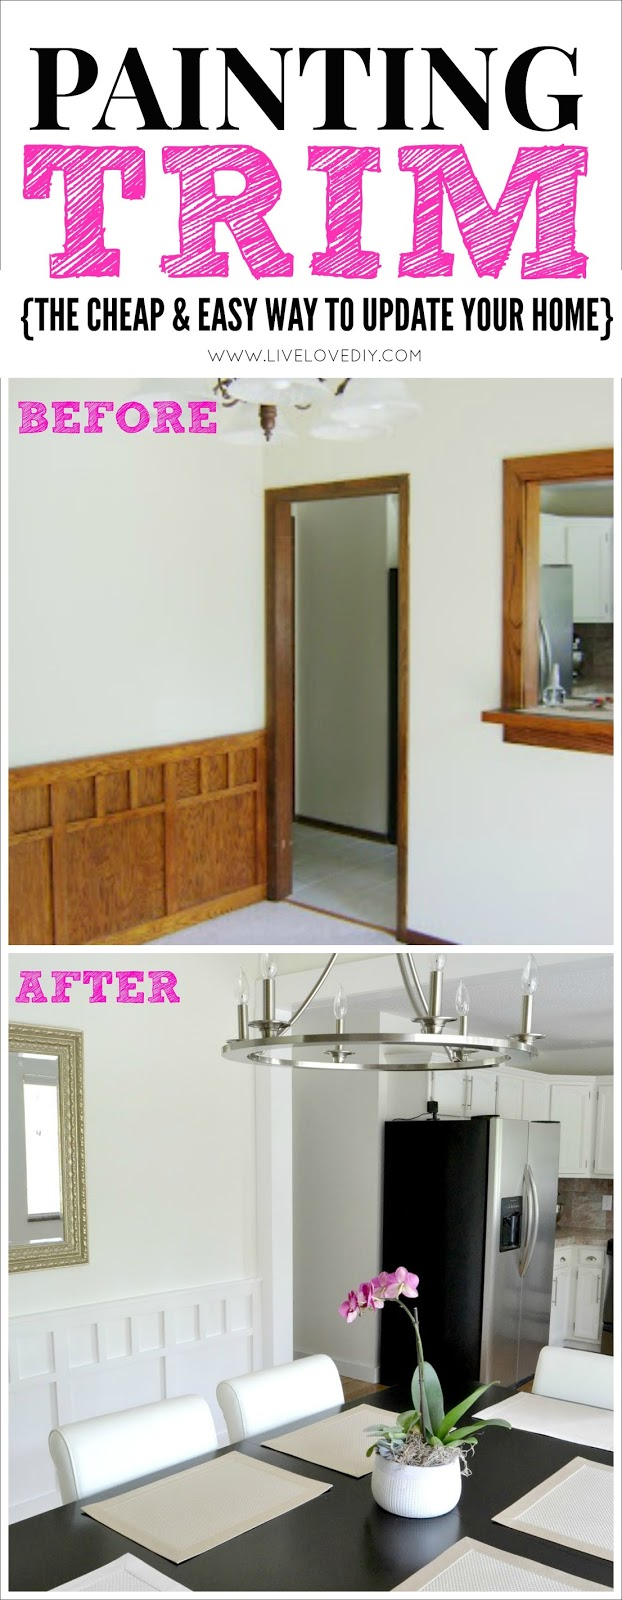 How To Paint Trim: the cheap and easy way to update your home! You wont believe these before and afters. Click through for more info.